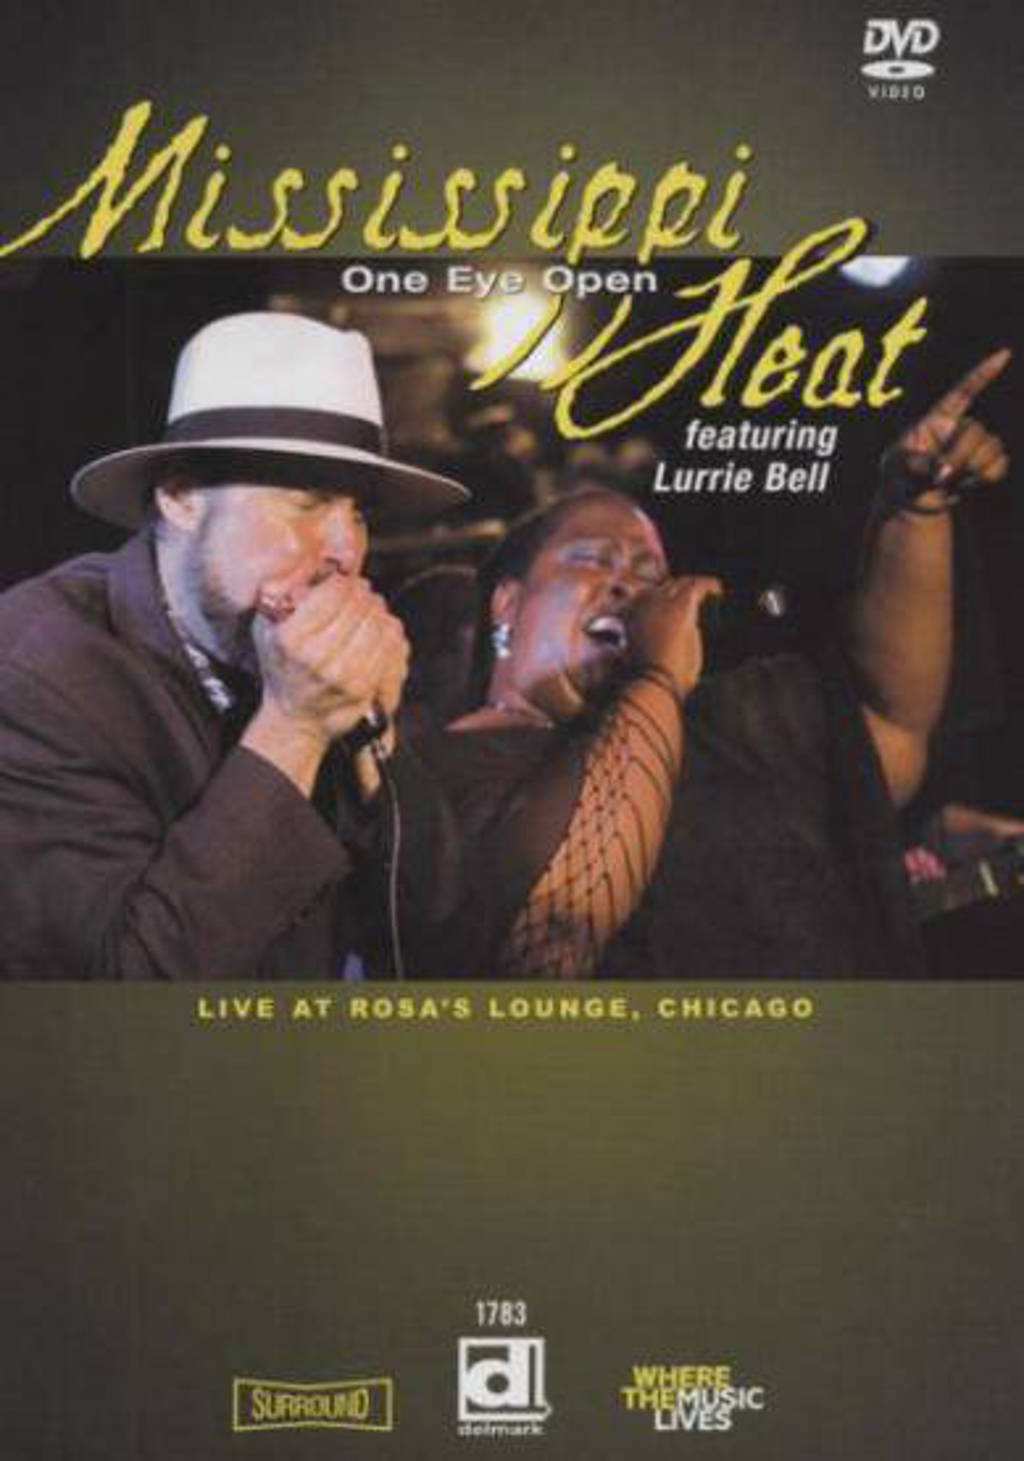 Mississippi Heat Feat. Lurrie Bell - One Eye Open. Live At Rosa's Lounge (DVD)